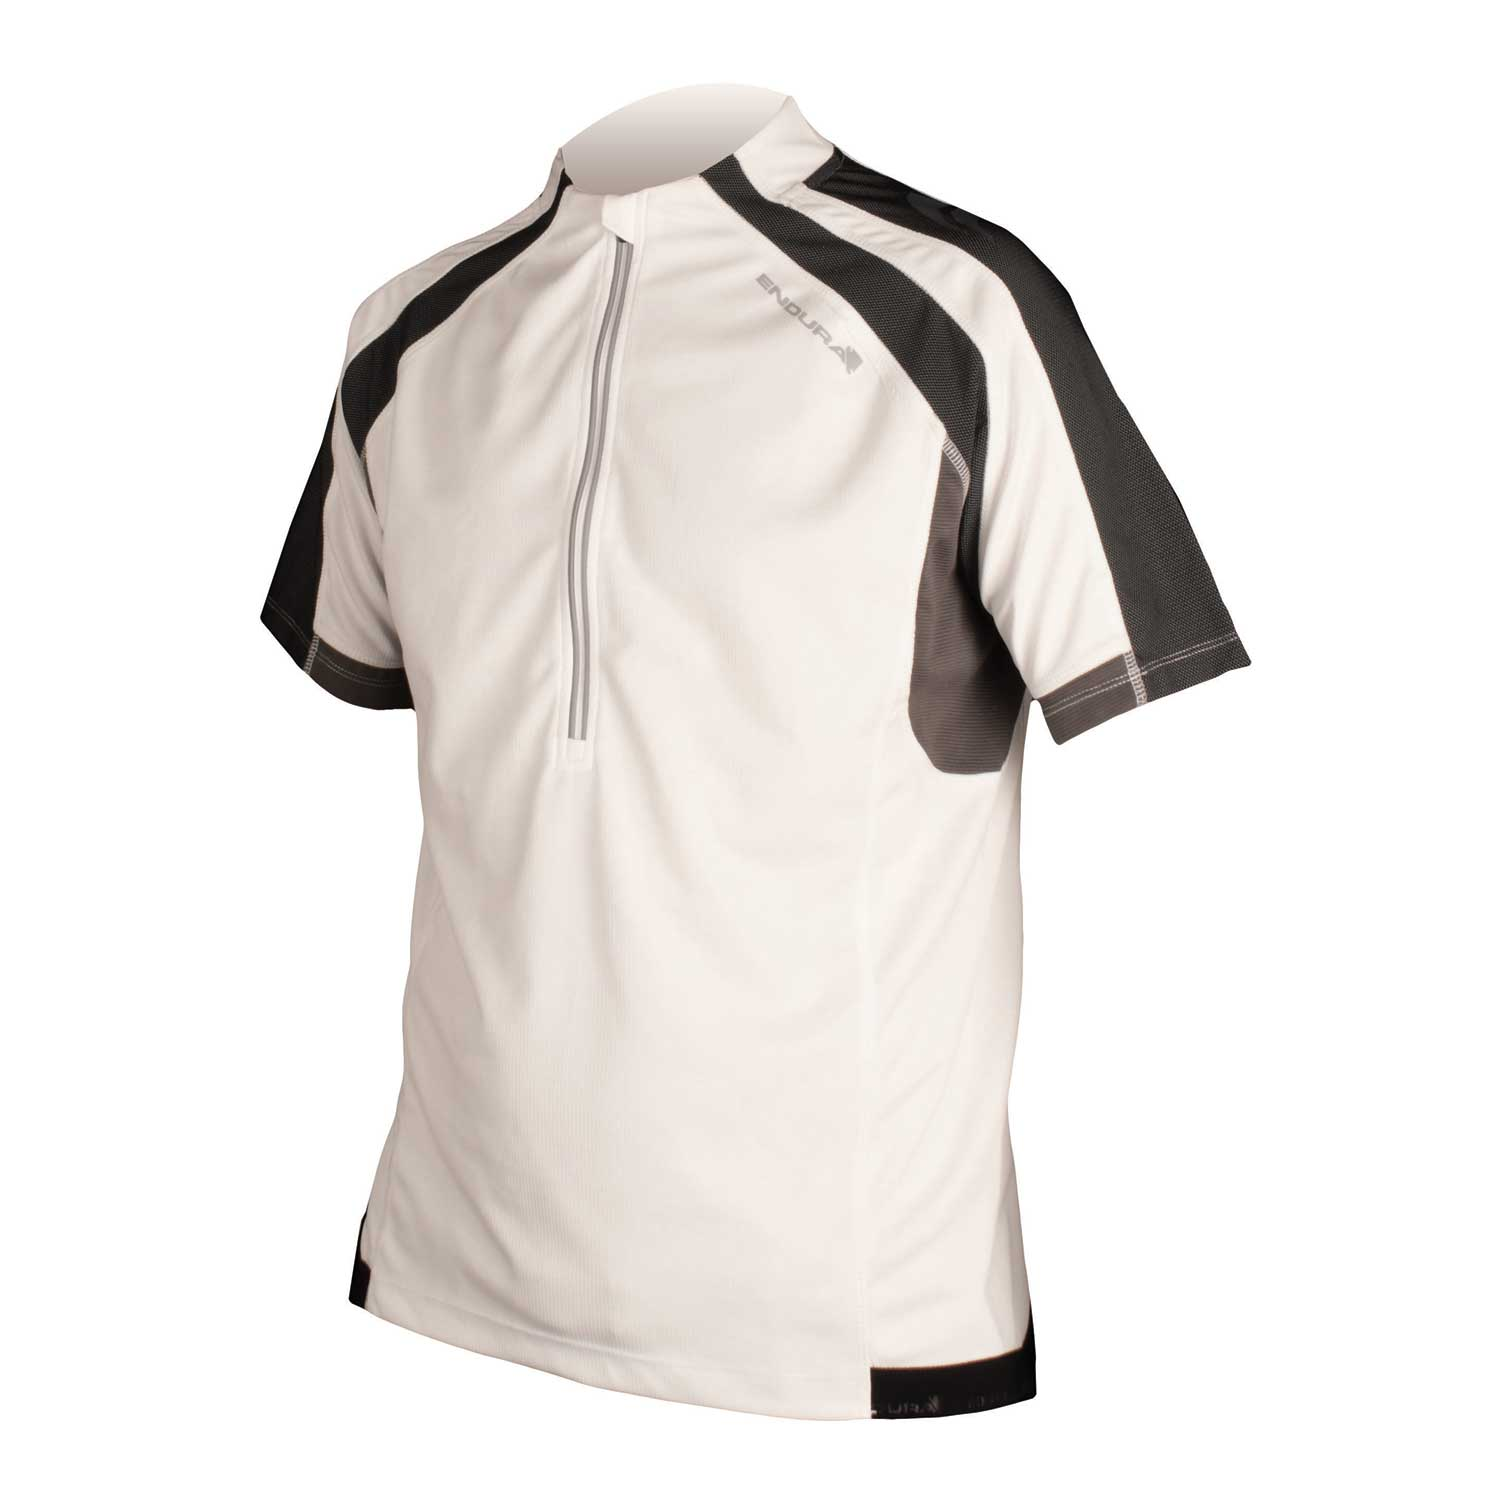 White. Hummvee S S Jersey front ... bc53ed93c